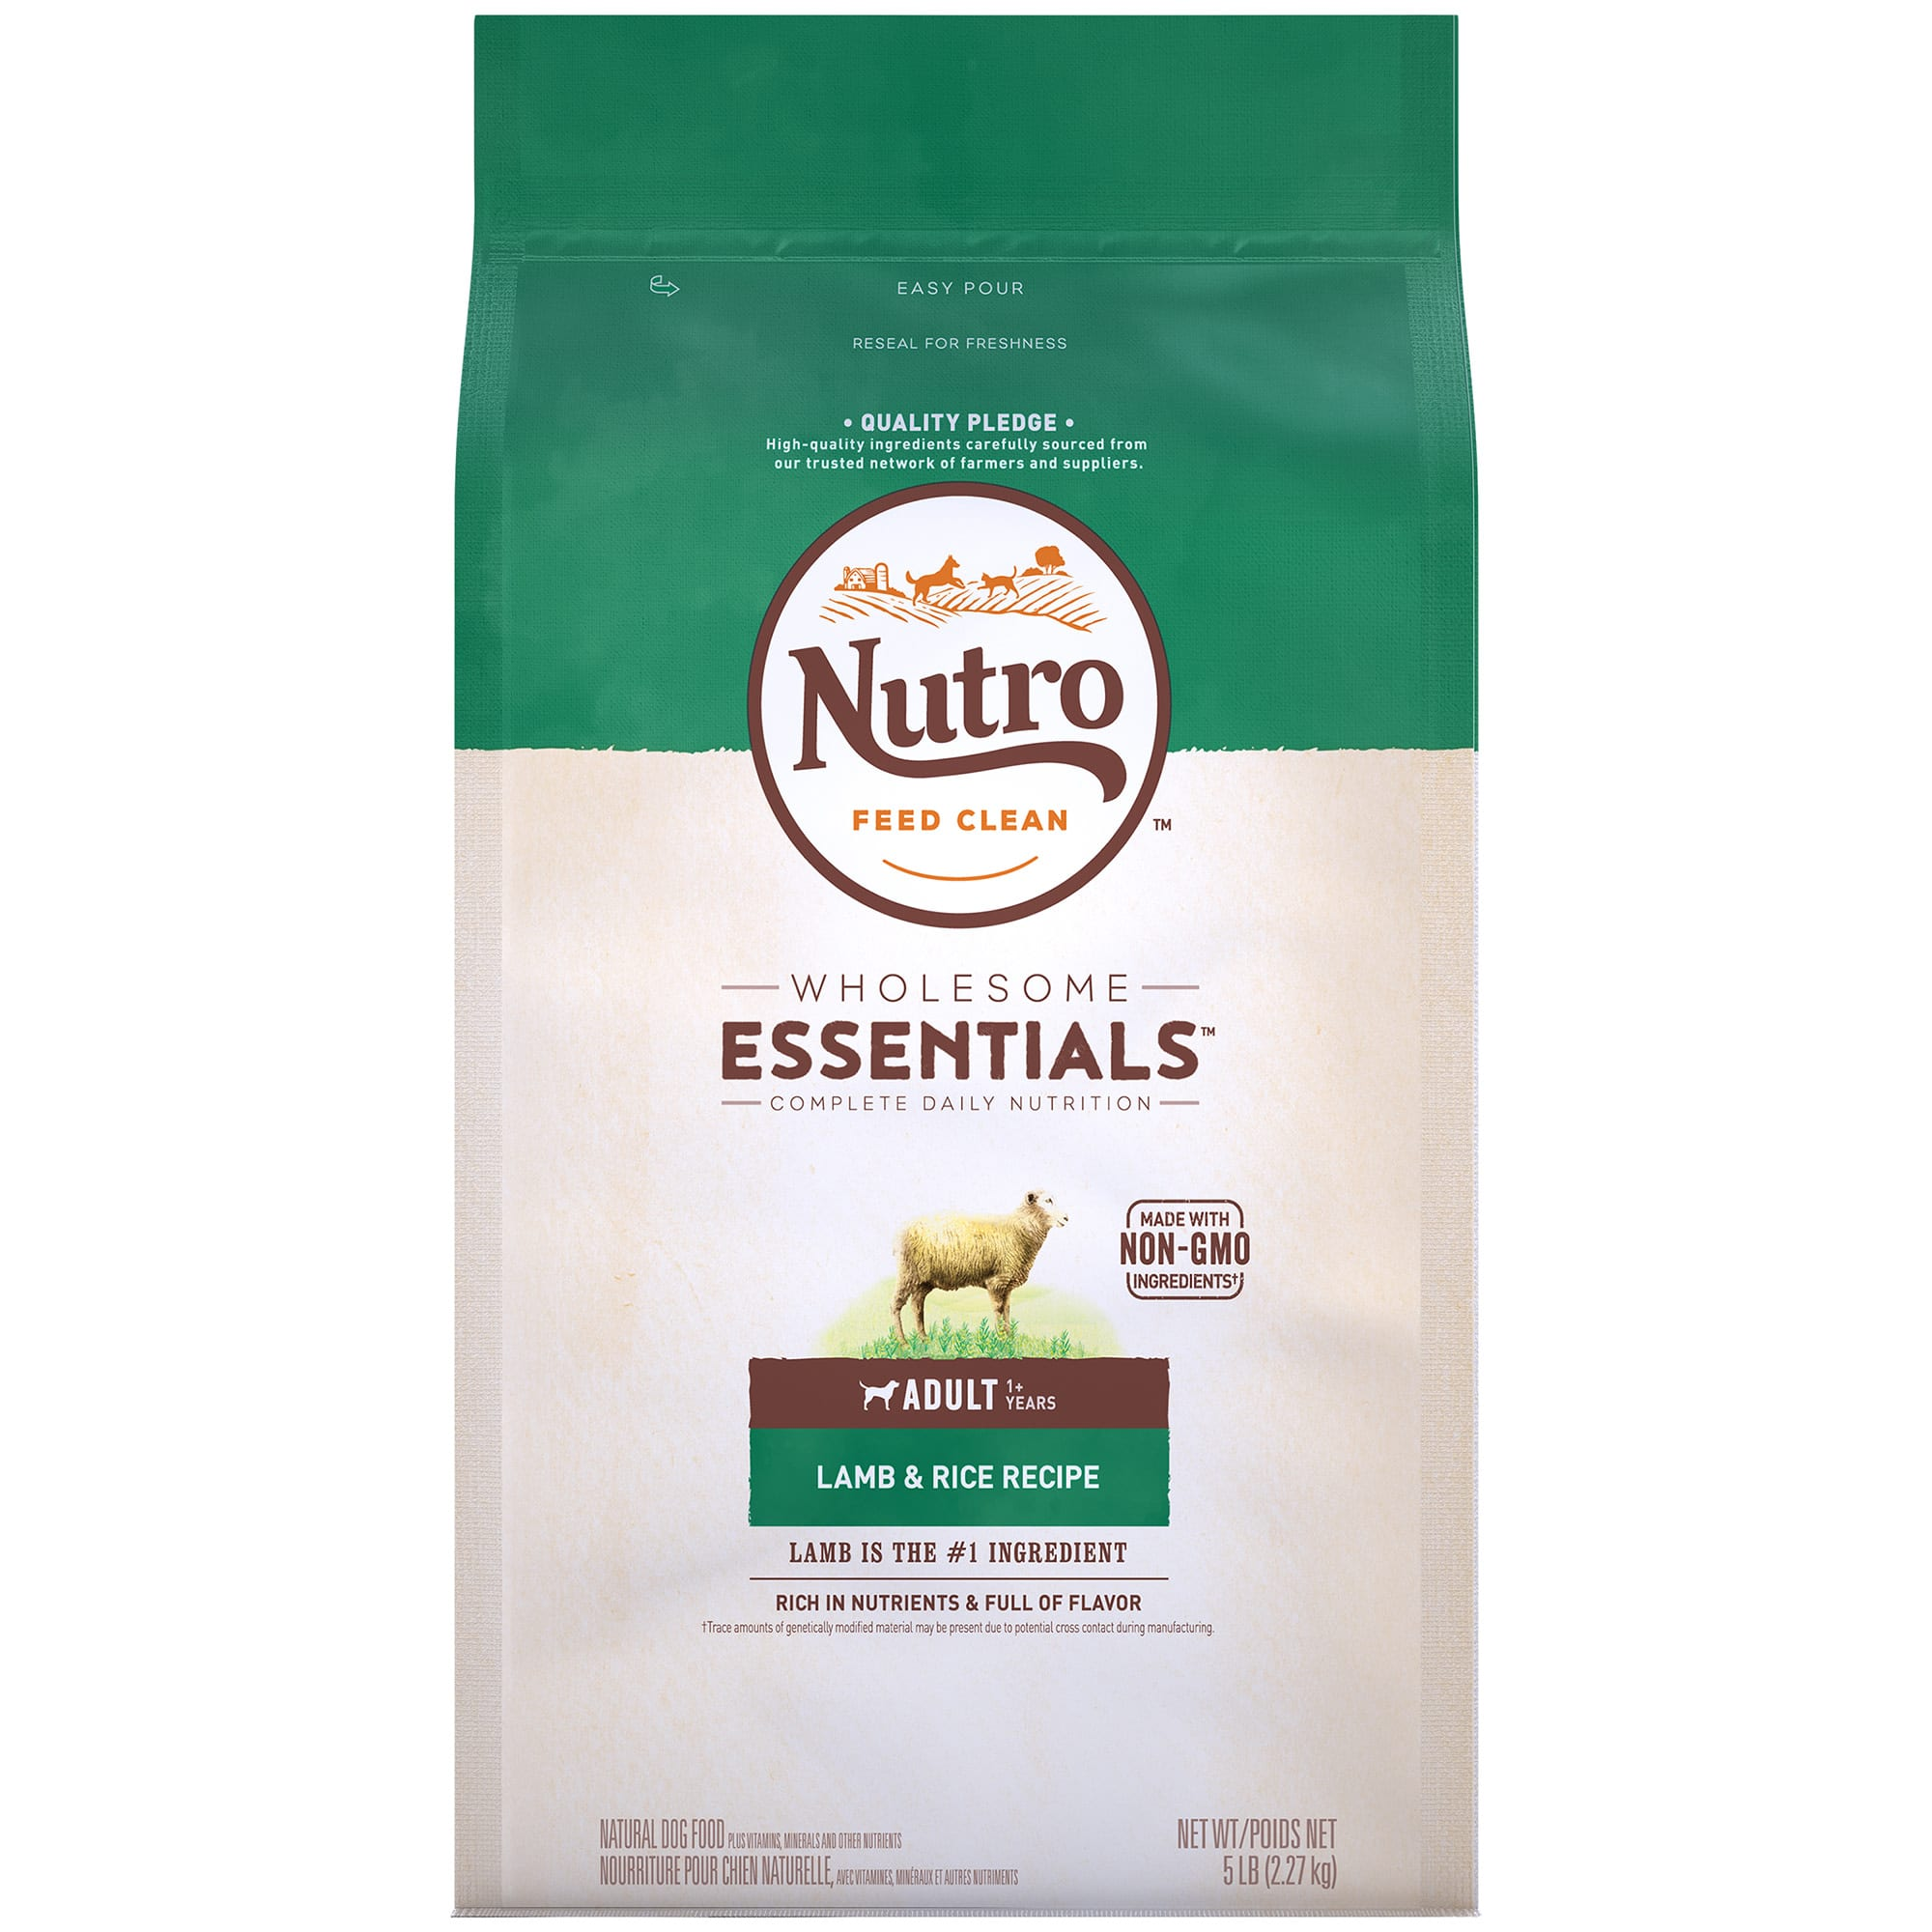 Nutro Wholesome Essentials Natural Lamb & Rice Recipe Adult Dry Dog Food, 5 lbs.